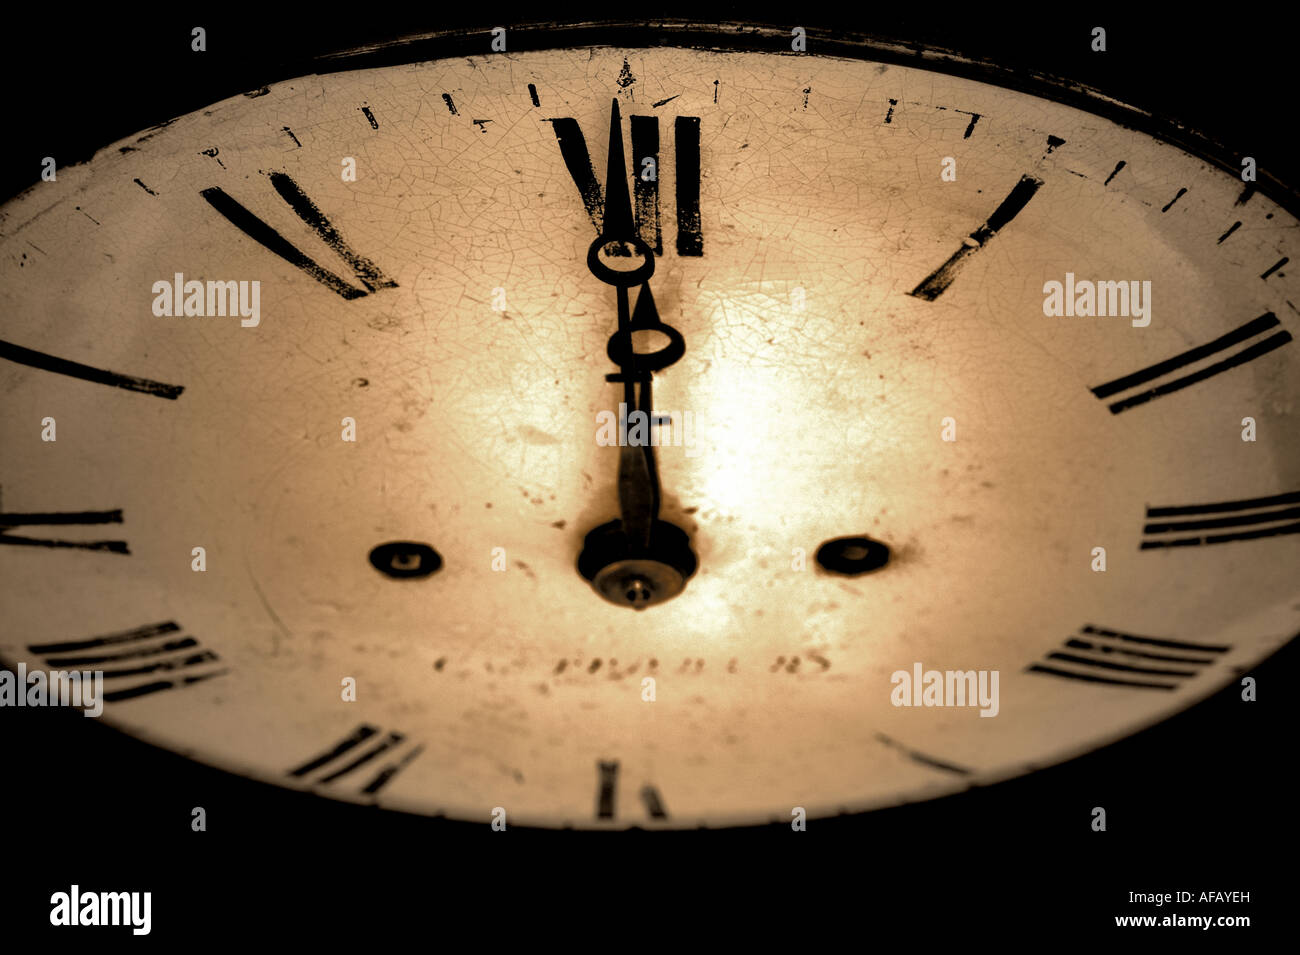 Antique clock face with the hands at 12 o clock dark and grainy sepia toned image - Stock Image